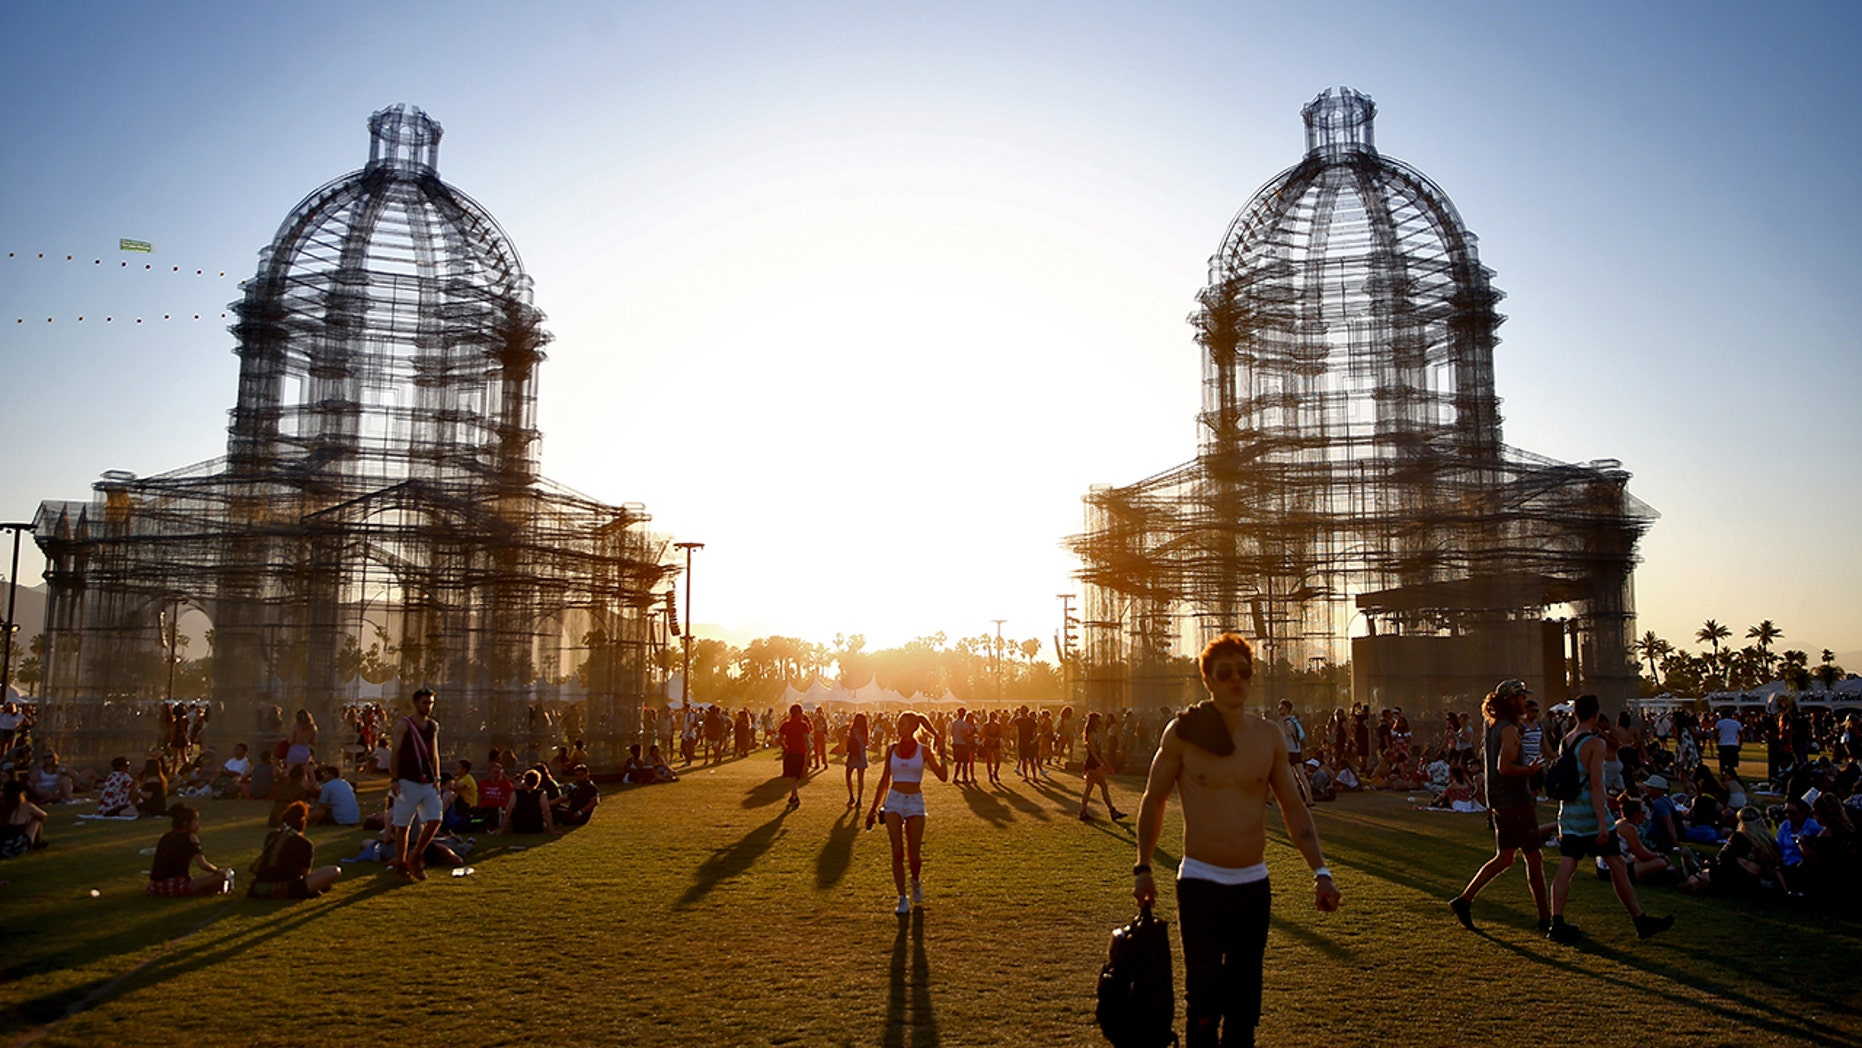 Festivalgoers during the 2018 Coachella Valley Music And Arts Festival at the Empire Polo Field last April in Indio, Calif. (Photo by Rich Fury/Getty Images for Coachella)